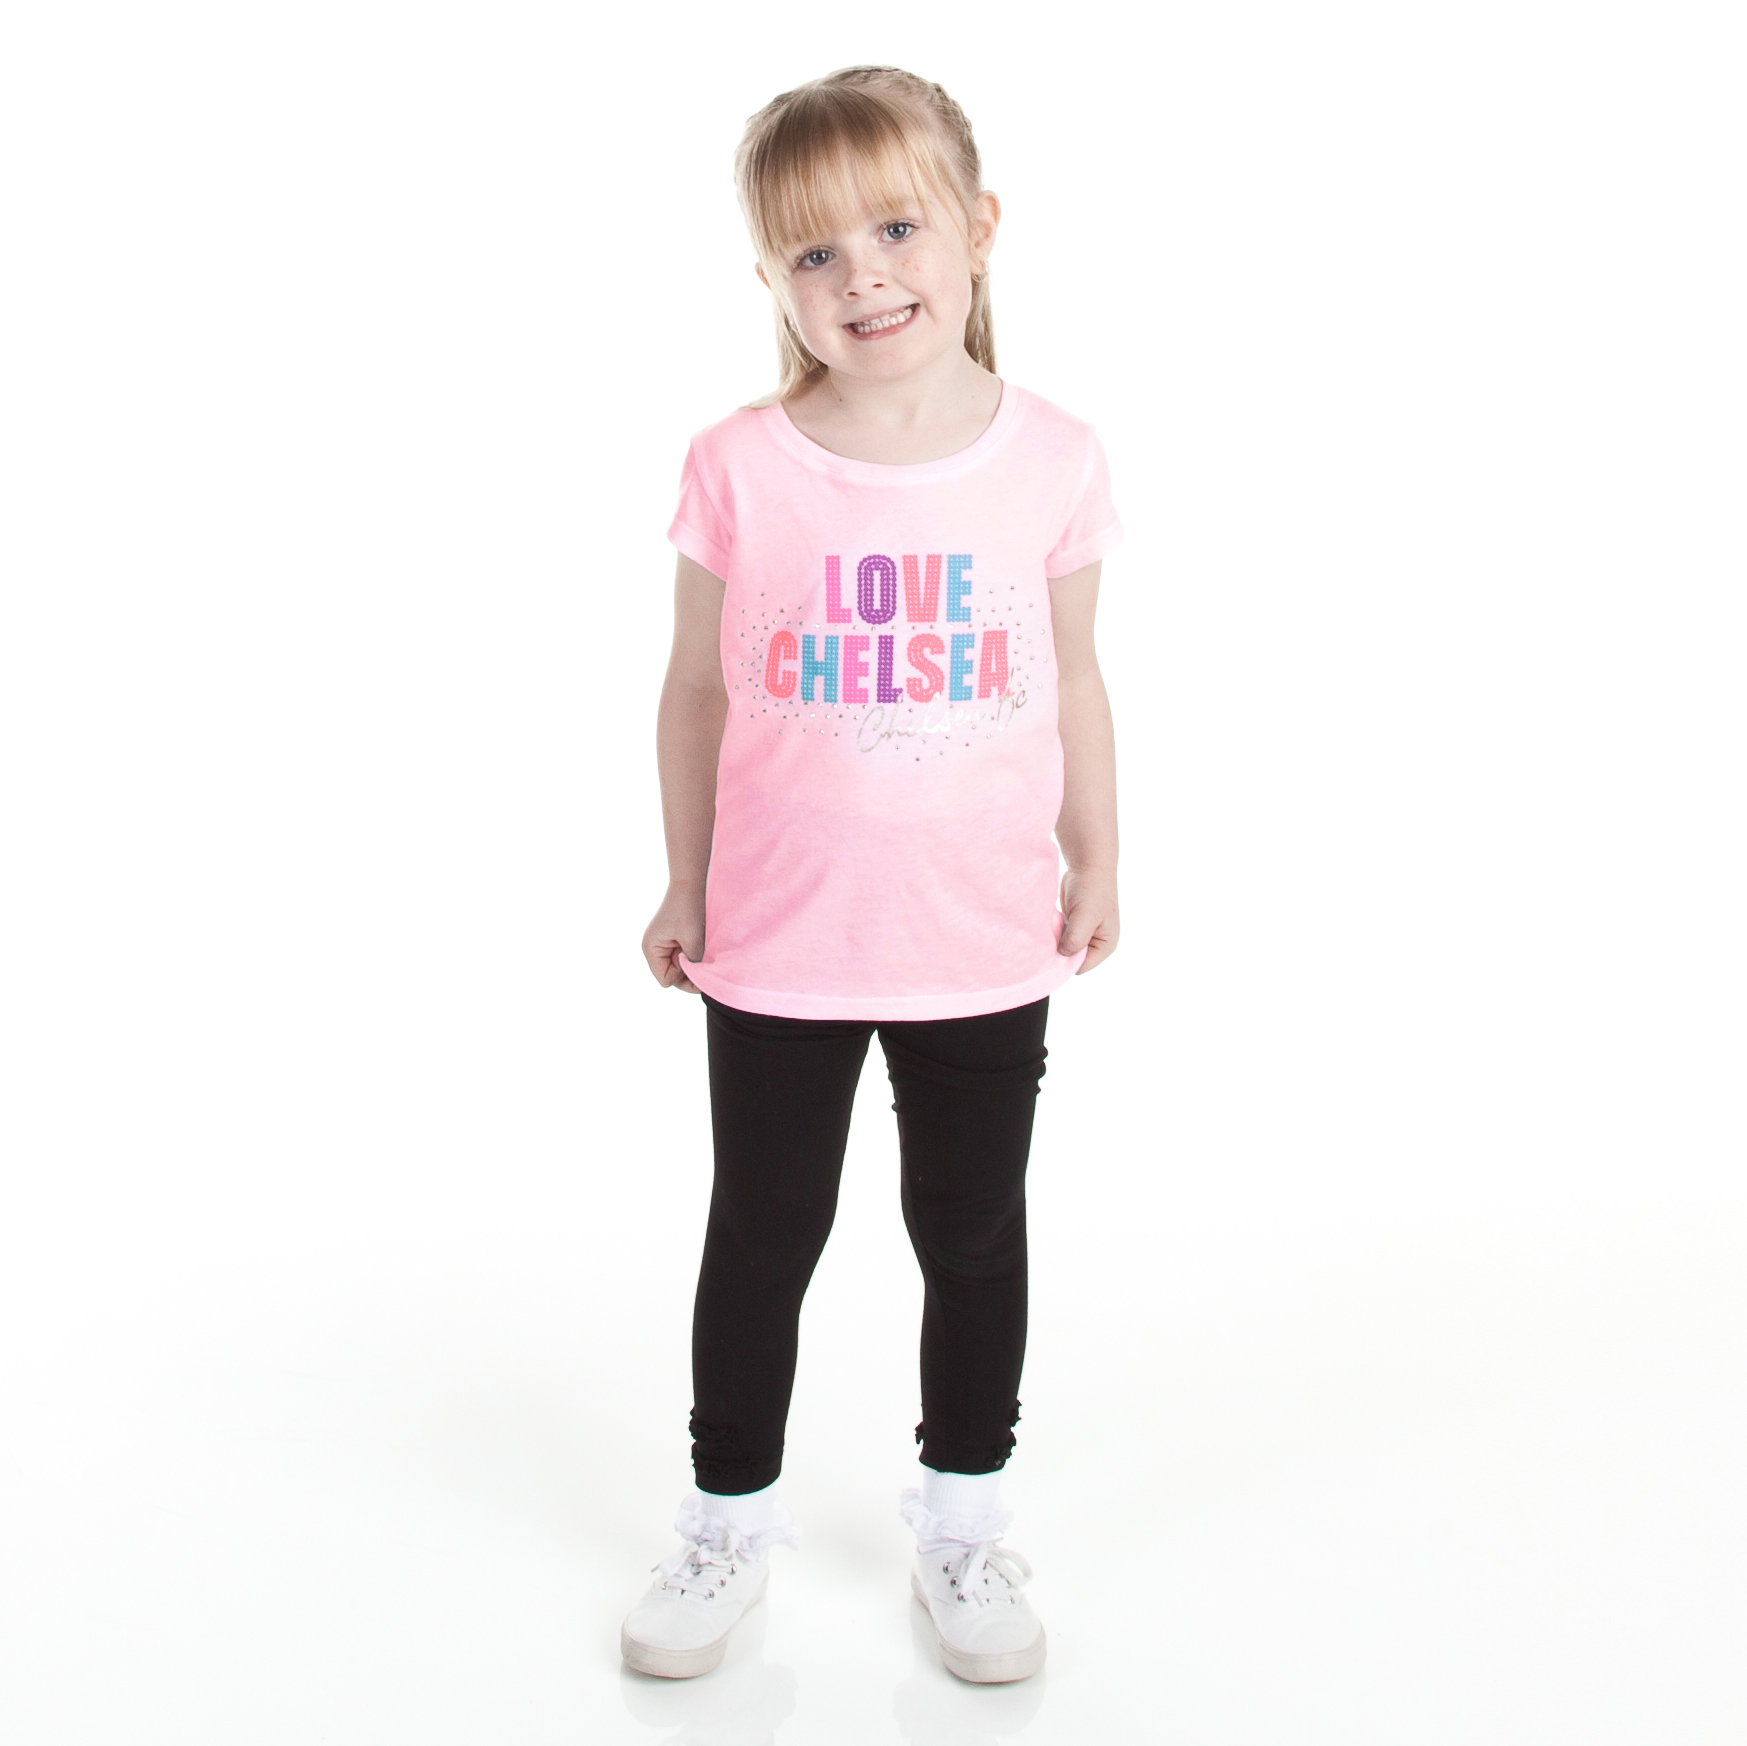 Chelsea Love Graphic T-Shirt - Sherbet Pink - Infant Girls